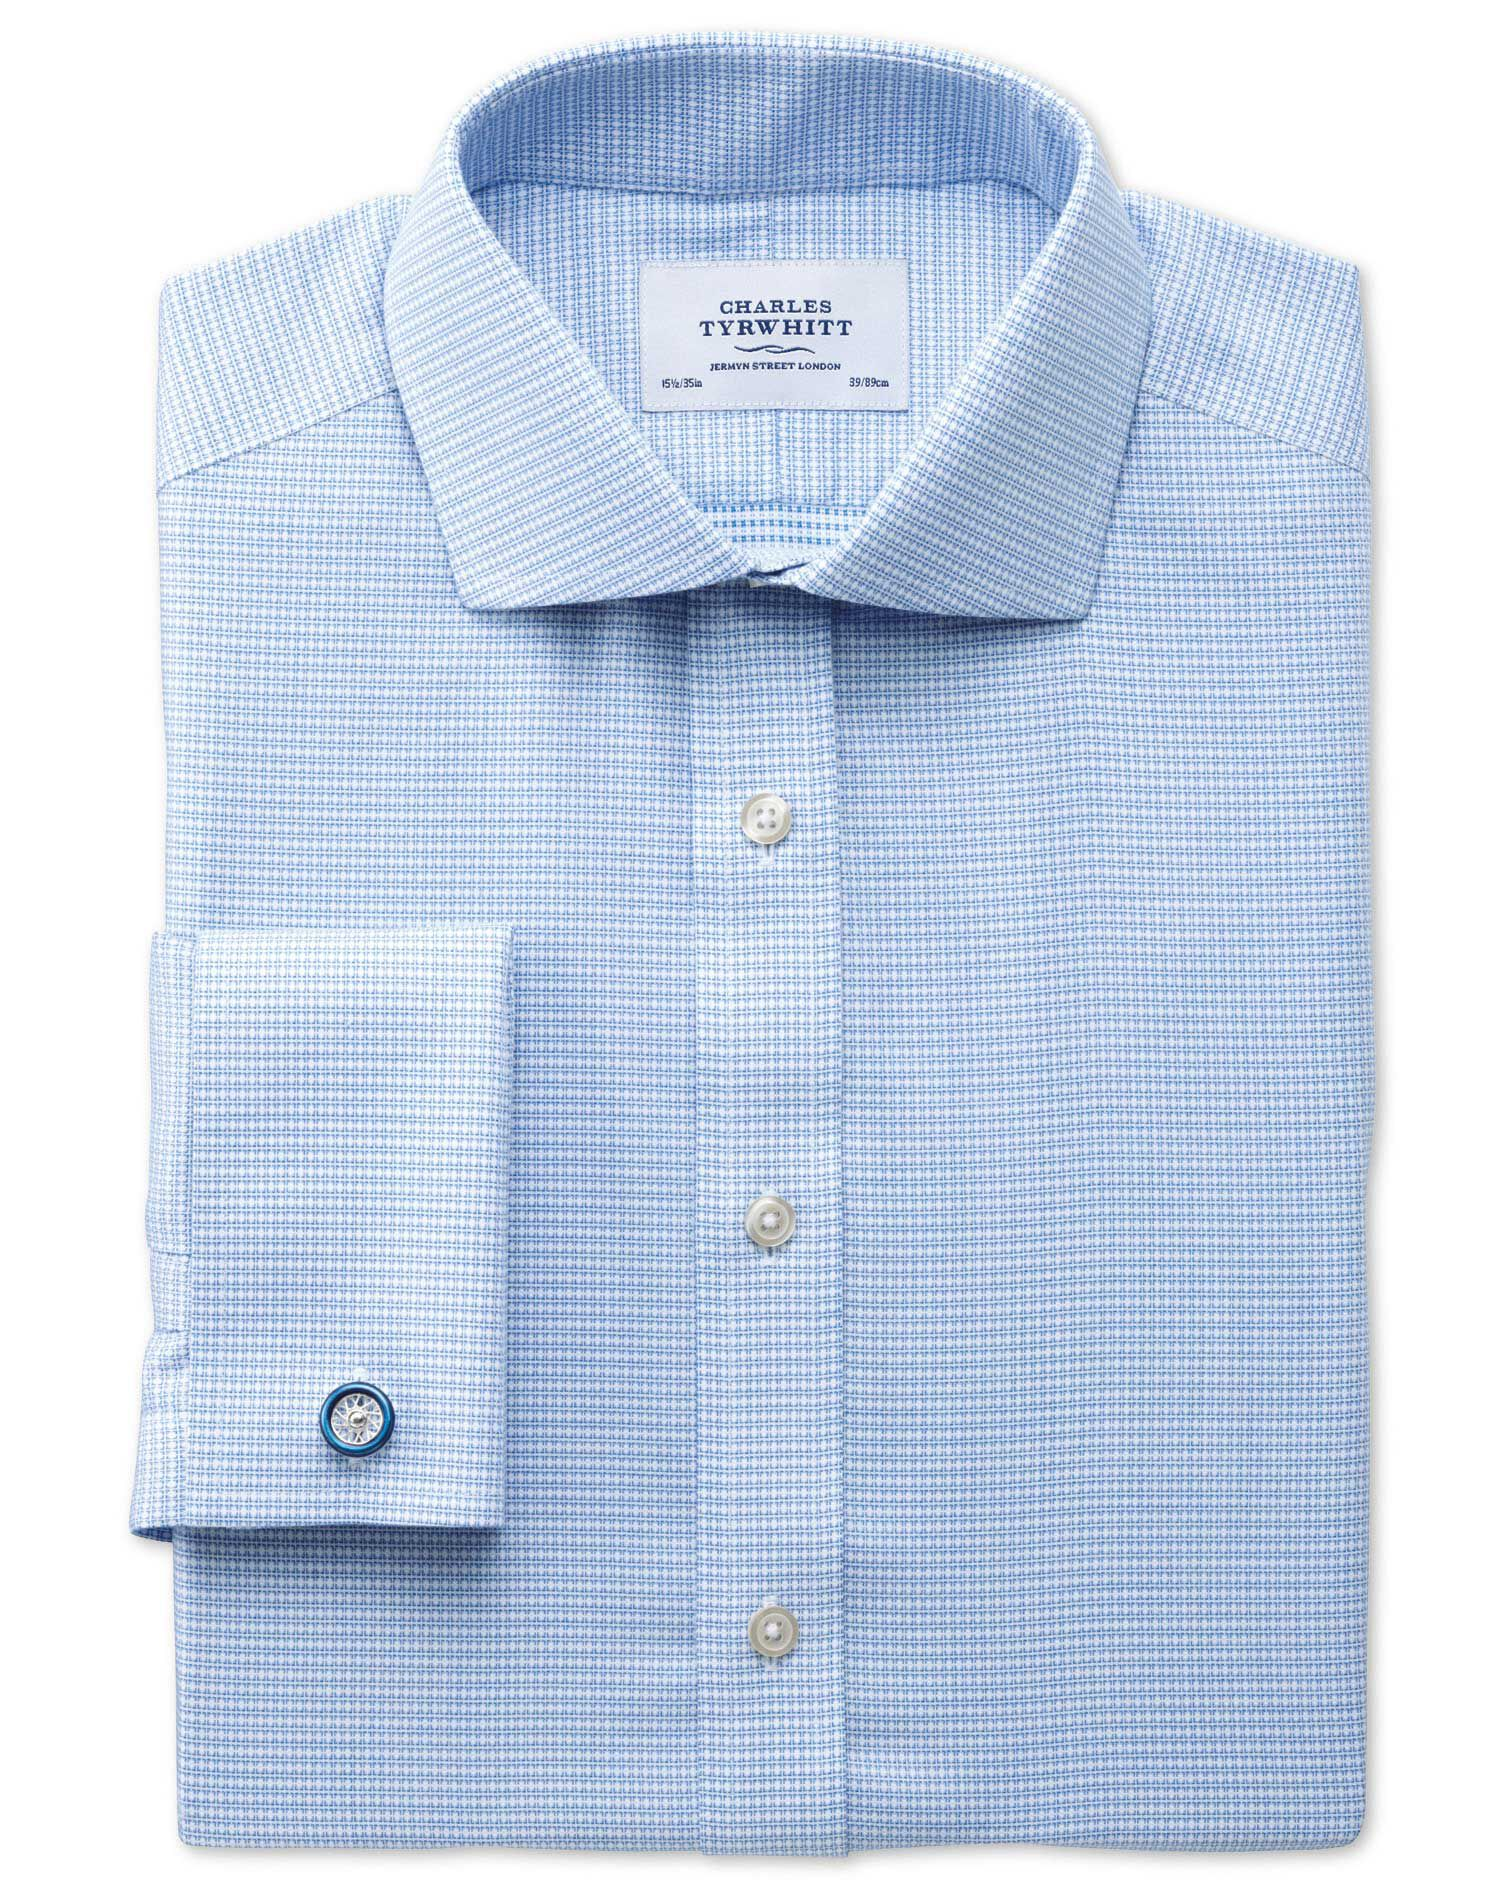 Extra Slim Fit Cutaway Collar Non-Iron Square Textured Mid Blue Cotton Formal Shirt Double Cuff Size